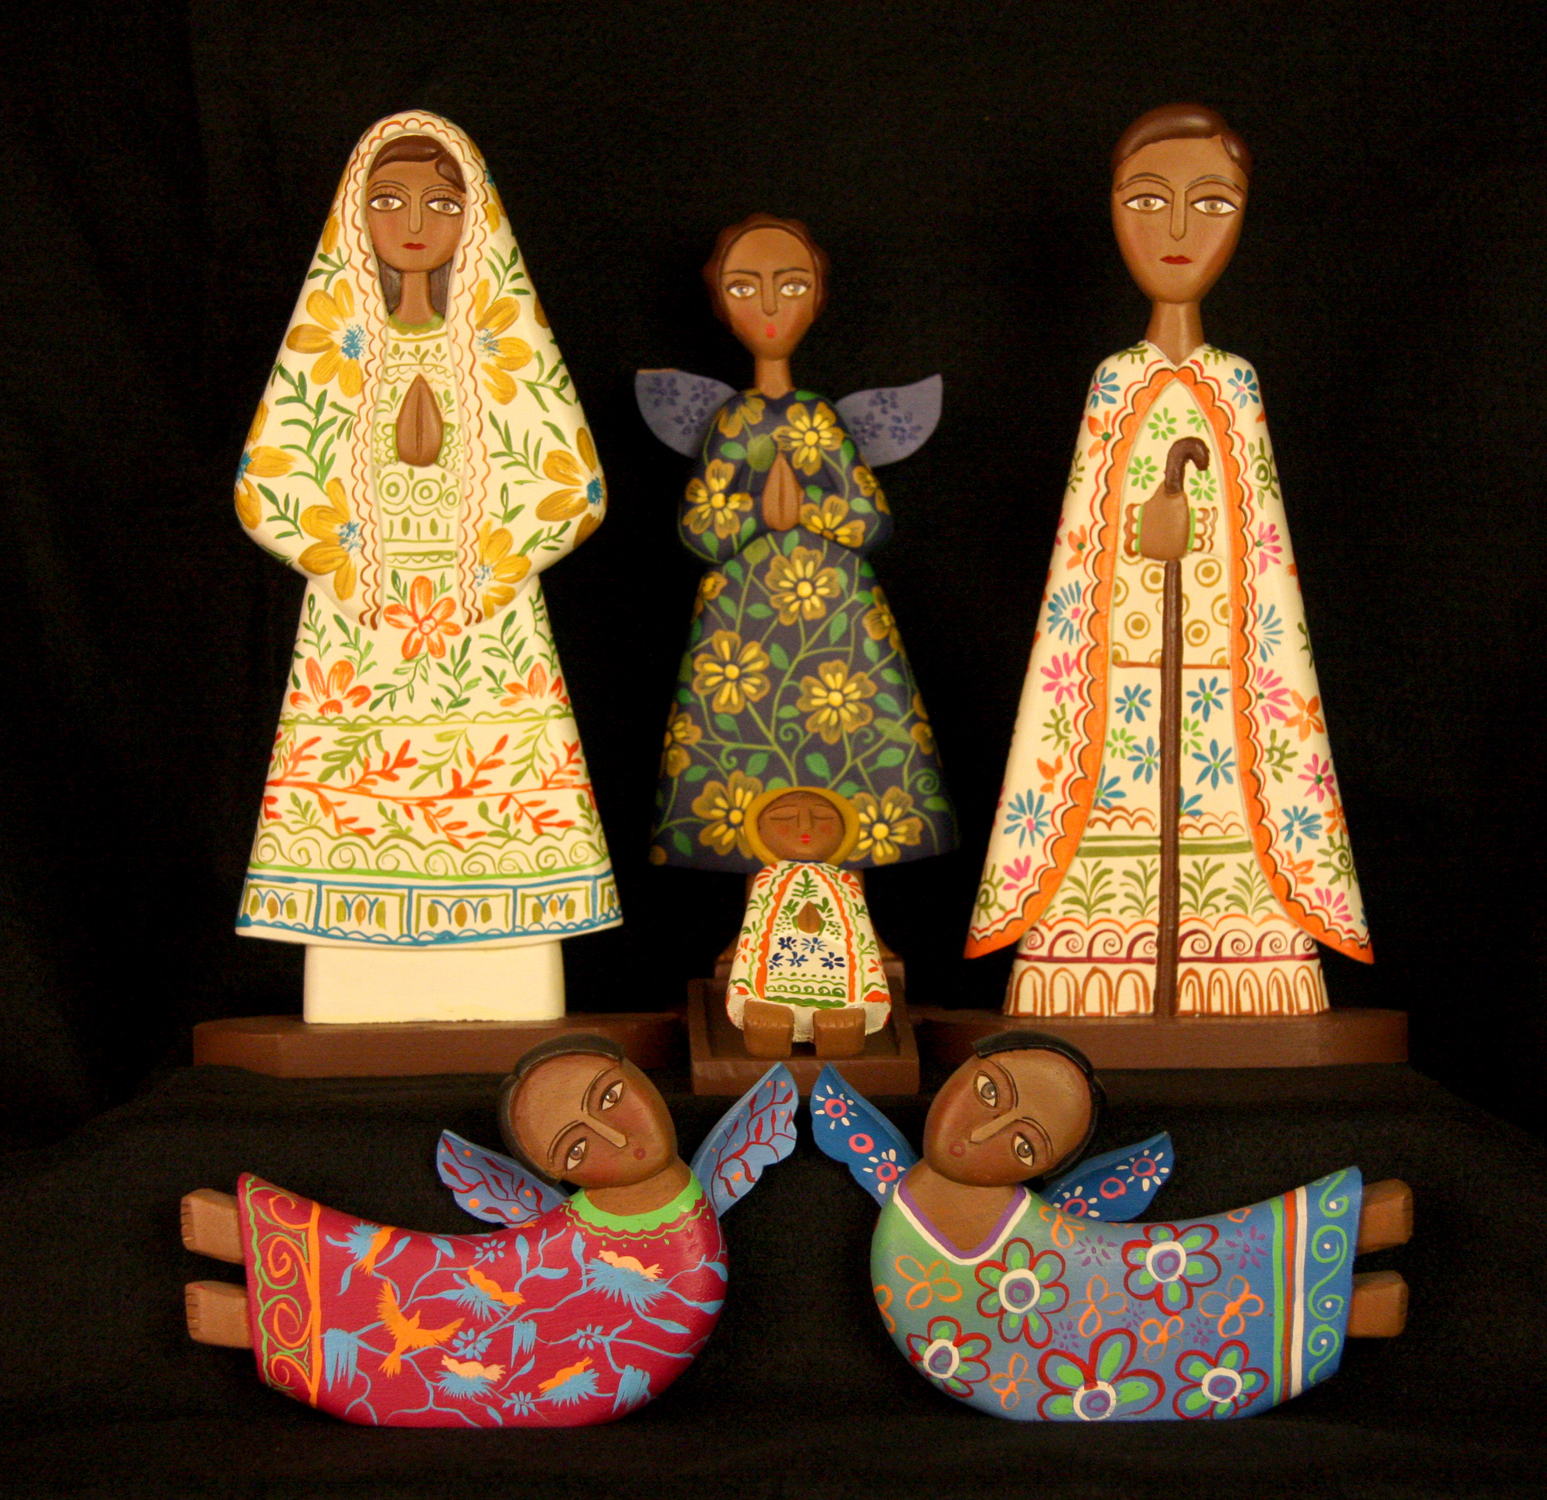 The Jimenez family of Masaya, Nicaragua, carves Nativity figures from cedar wood, which are then brightly painted by local artists. The father, mother and children are all involved in the process. In addition to the Holy Family, this Nativity includes the wise men and a heavenly host of twenty angels.